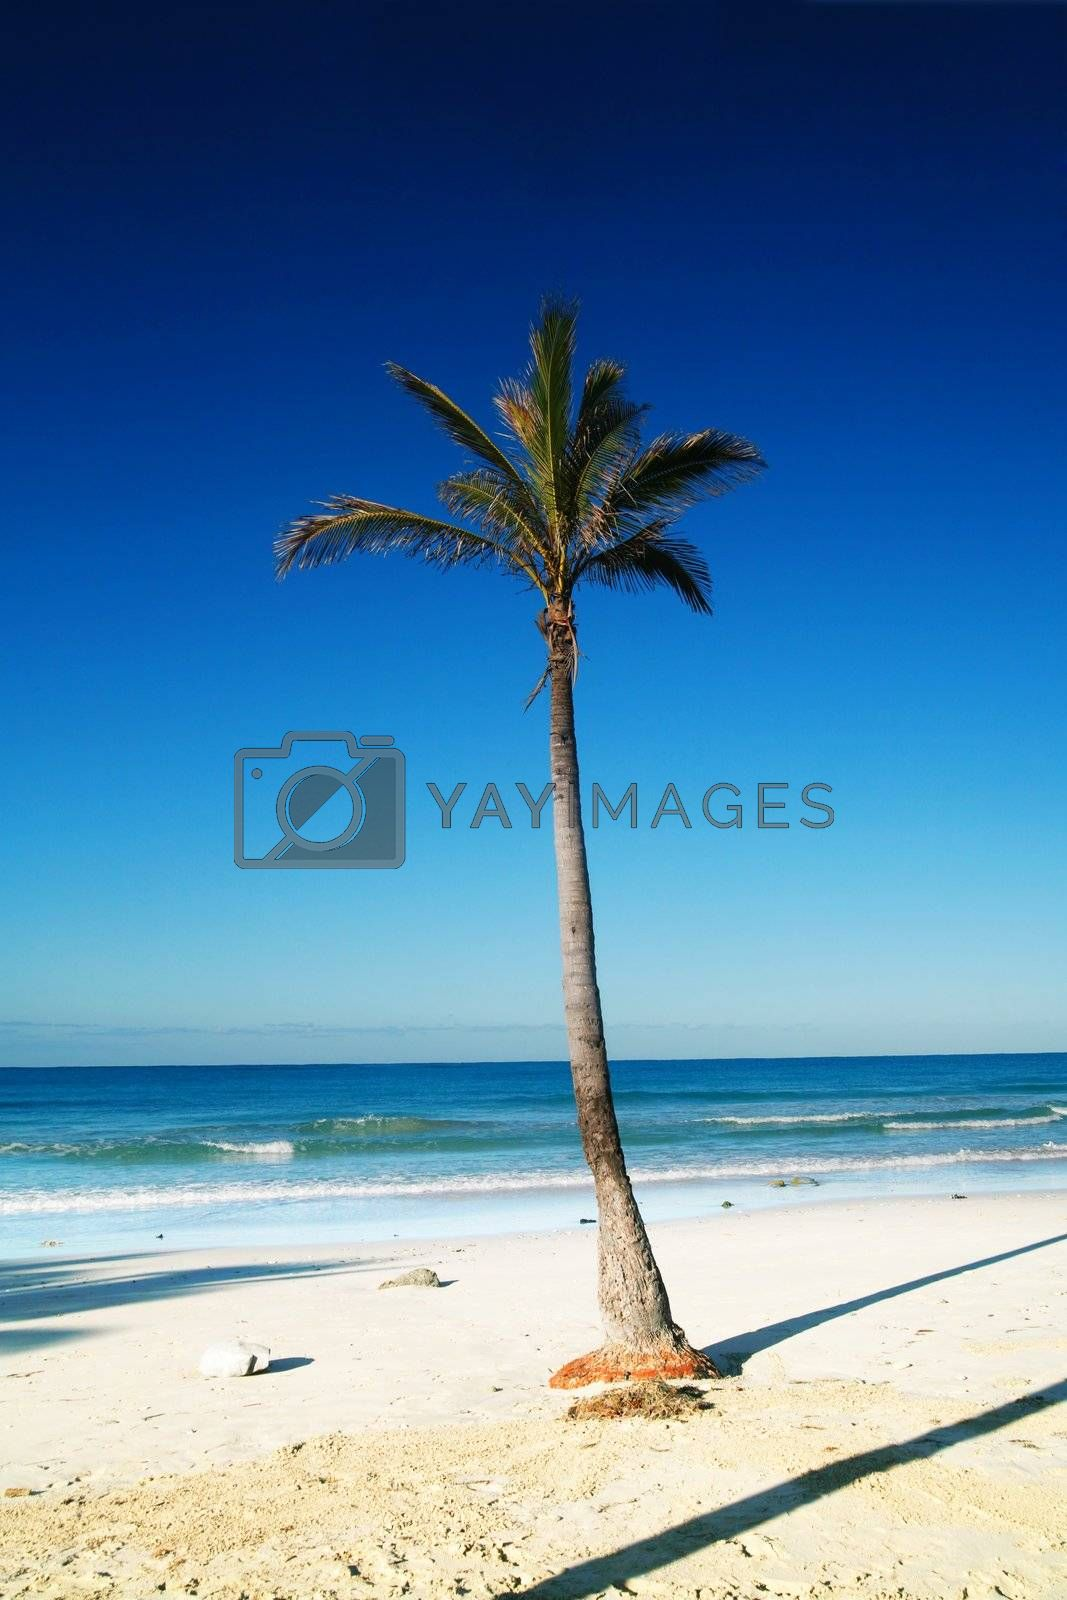 Royalty free image of Tropical Island by yucas